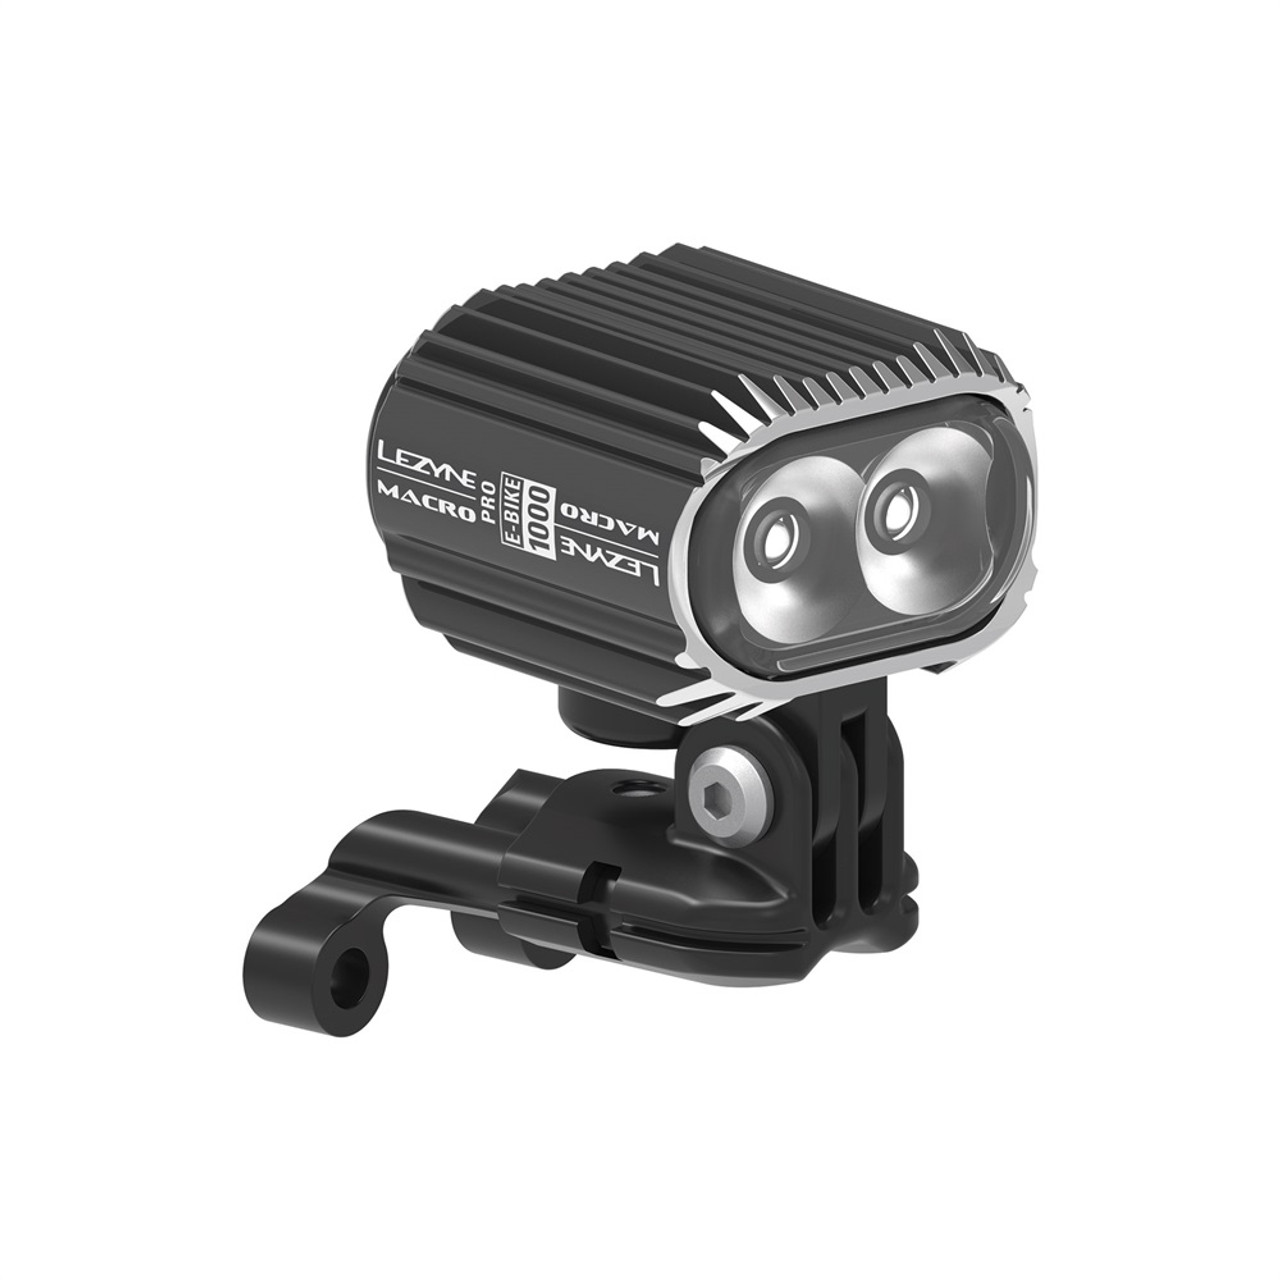 Lezyne E-Bike Macro Drive 1000 Front Light In Black RRP £75